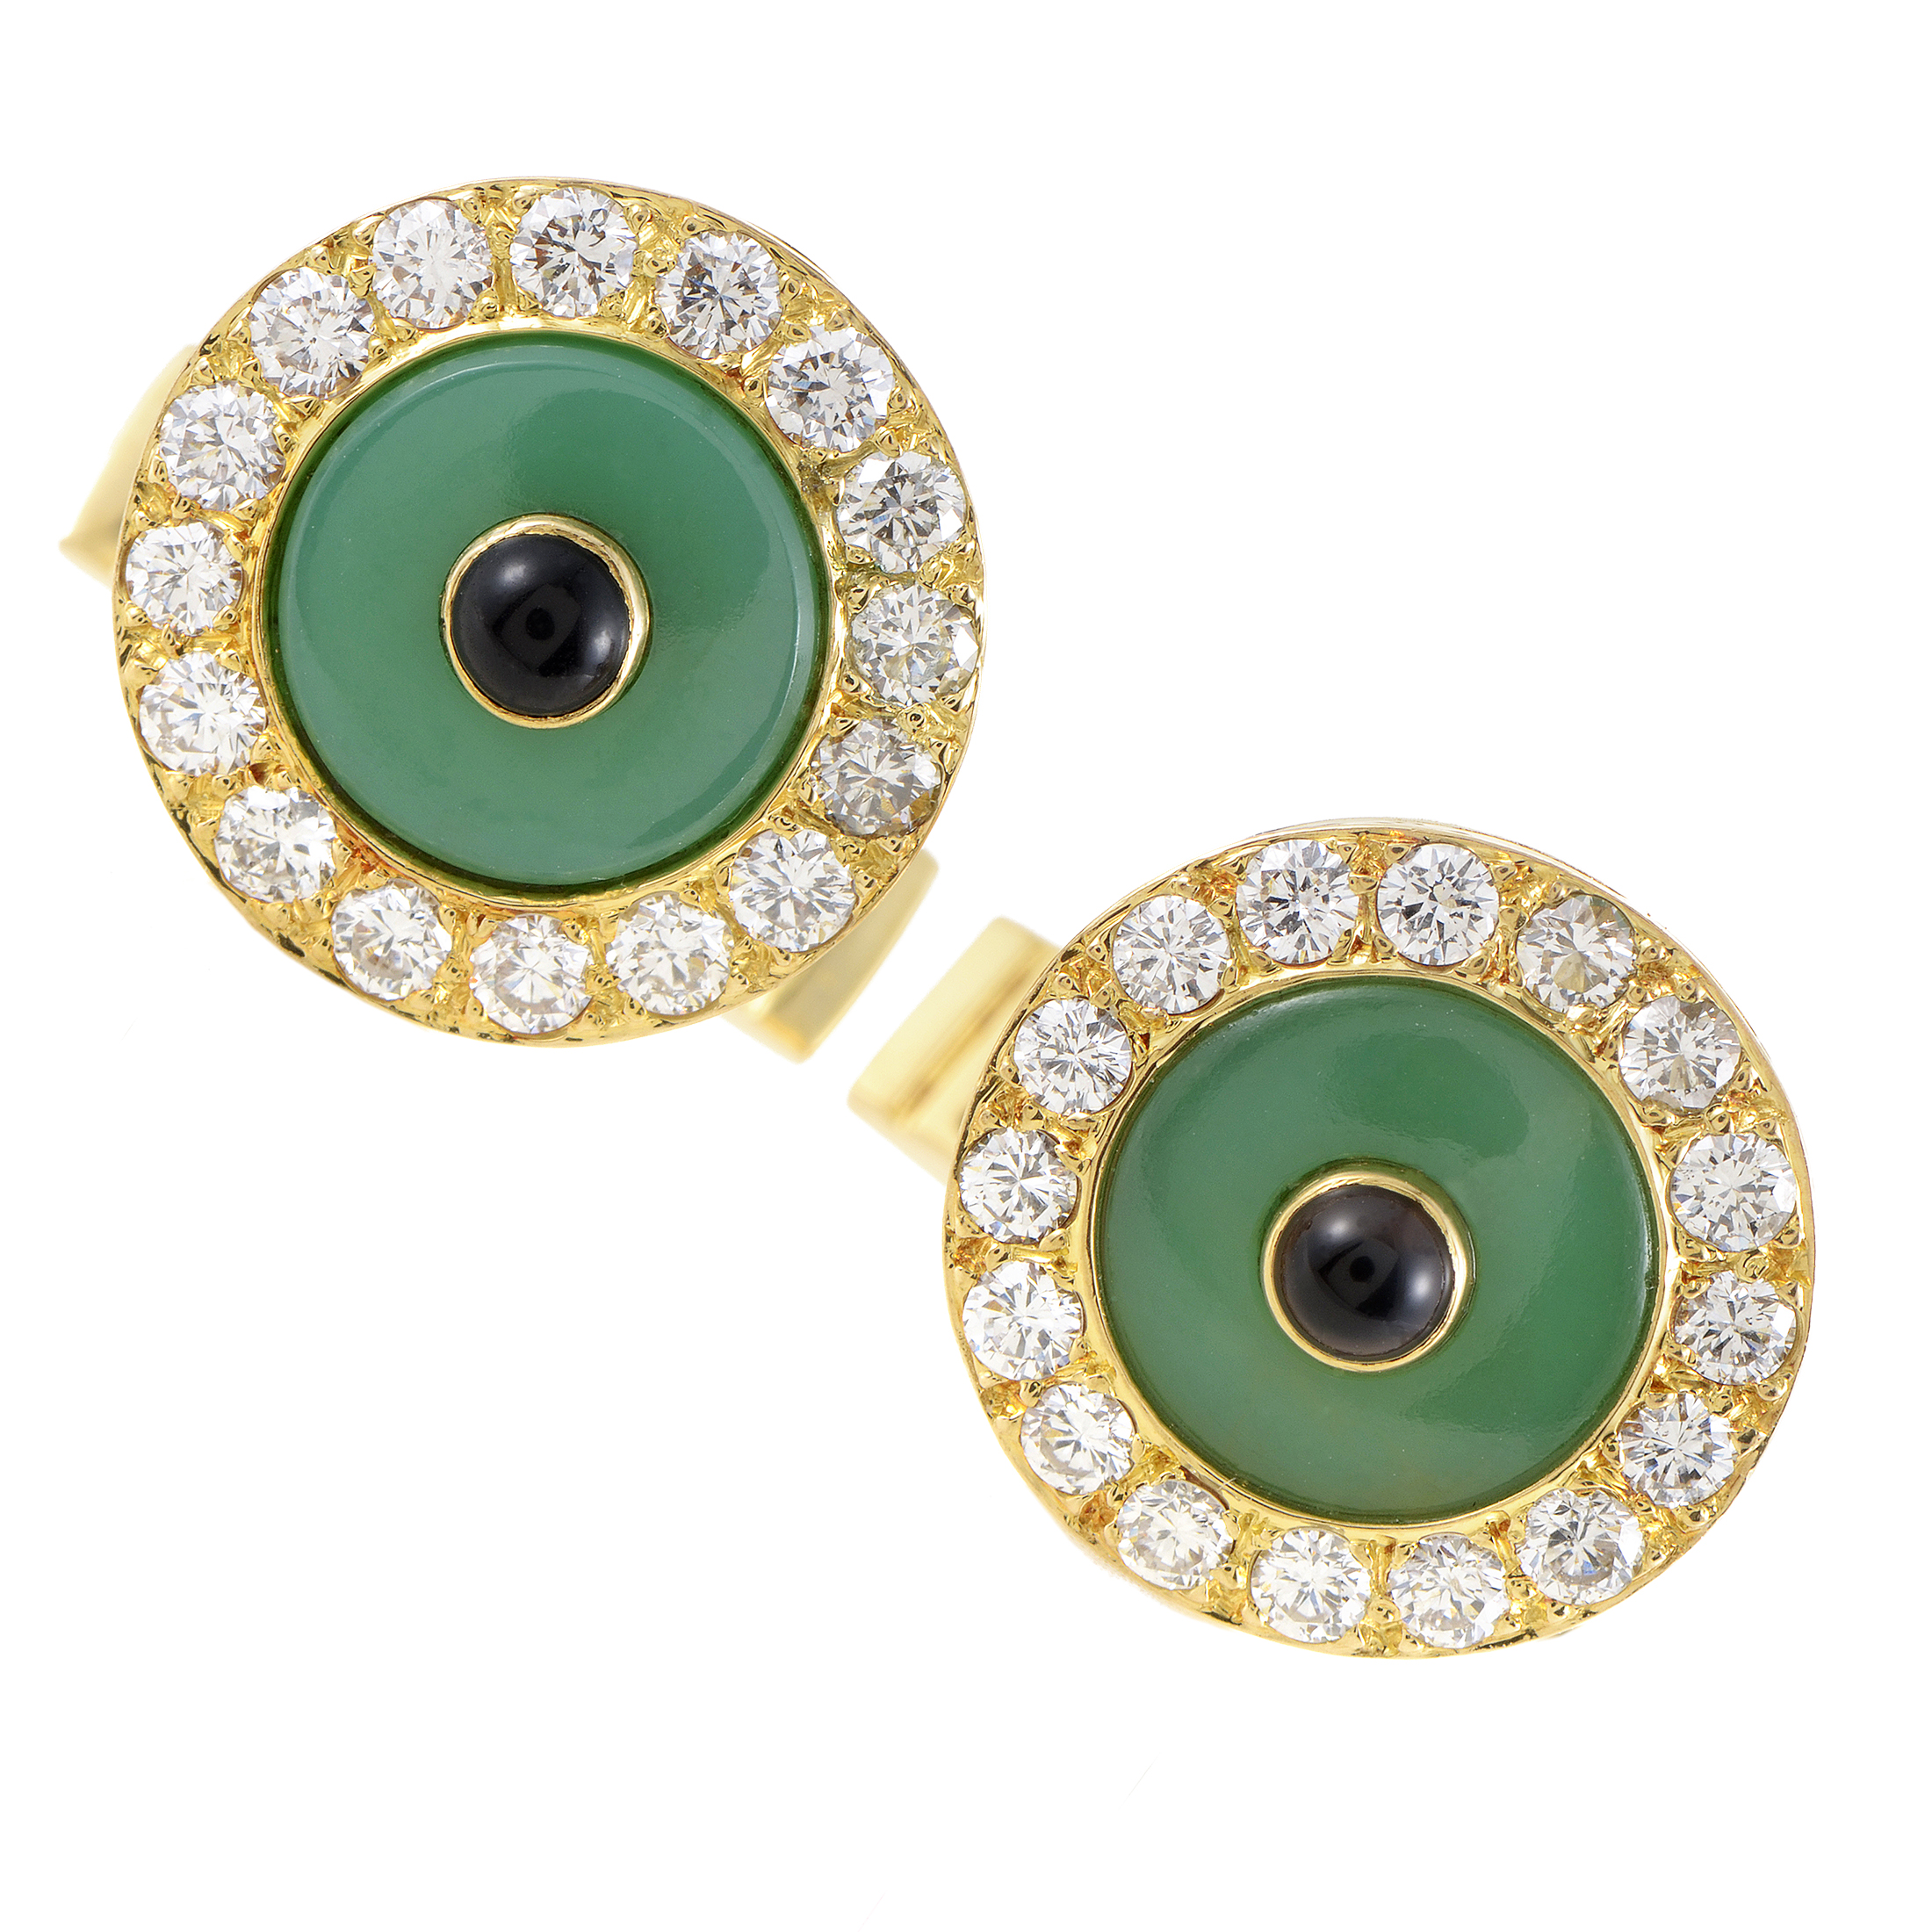 Boucheron Men's Enameled 18K Yellow Diamond & Onyx Cufflinks